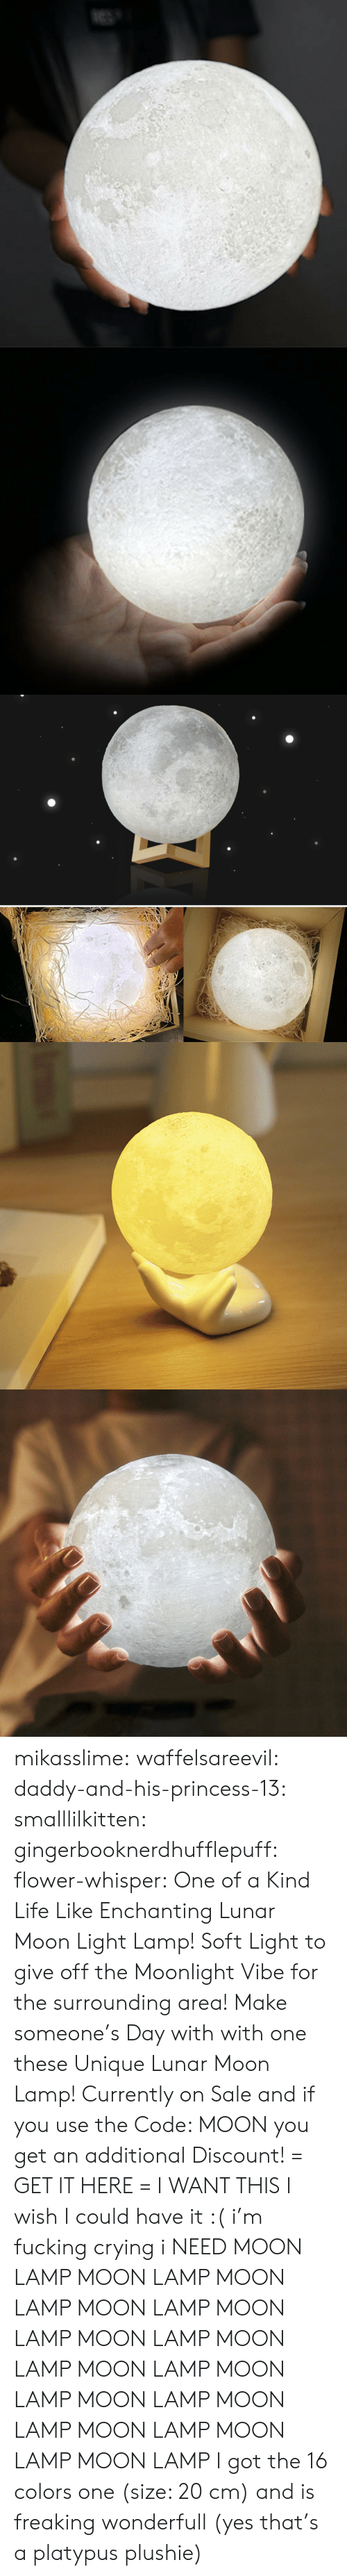 whisper: mikasslime: waffelsareevil:   daddy-and-his-princess-13:  smalllilkitten:   gingerbooknerdhufflepuff:   flower-whisper:  One of a Kind Life Like Enchanting Lunar Moon Light Lamp! Soft Light to give off the Moonlight Vibe for the surrounding area! Make someone's Day with with one these Unique Lunar Moon Lamp! Currently on Sale and if you use the Code: MOON you get an additional Discount! = GET IT HERE =   I WANT THIS   I wish I could have it :(   i'm fucking crying i NEED   MOON LAMP MOON LAMP MOON LAMP MOON LAMP MOON LAMP MOON LAMP MOON LAMP MOON LAMP MOON LAMP MOON LAMP MOON LAMP MOON LAMP MOON LAMP MOON LAMP     I got the 16 colors one (size: 20 cm) and is freaking wonderfull (yes that's a platypus plushie)